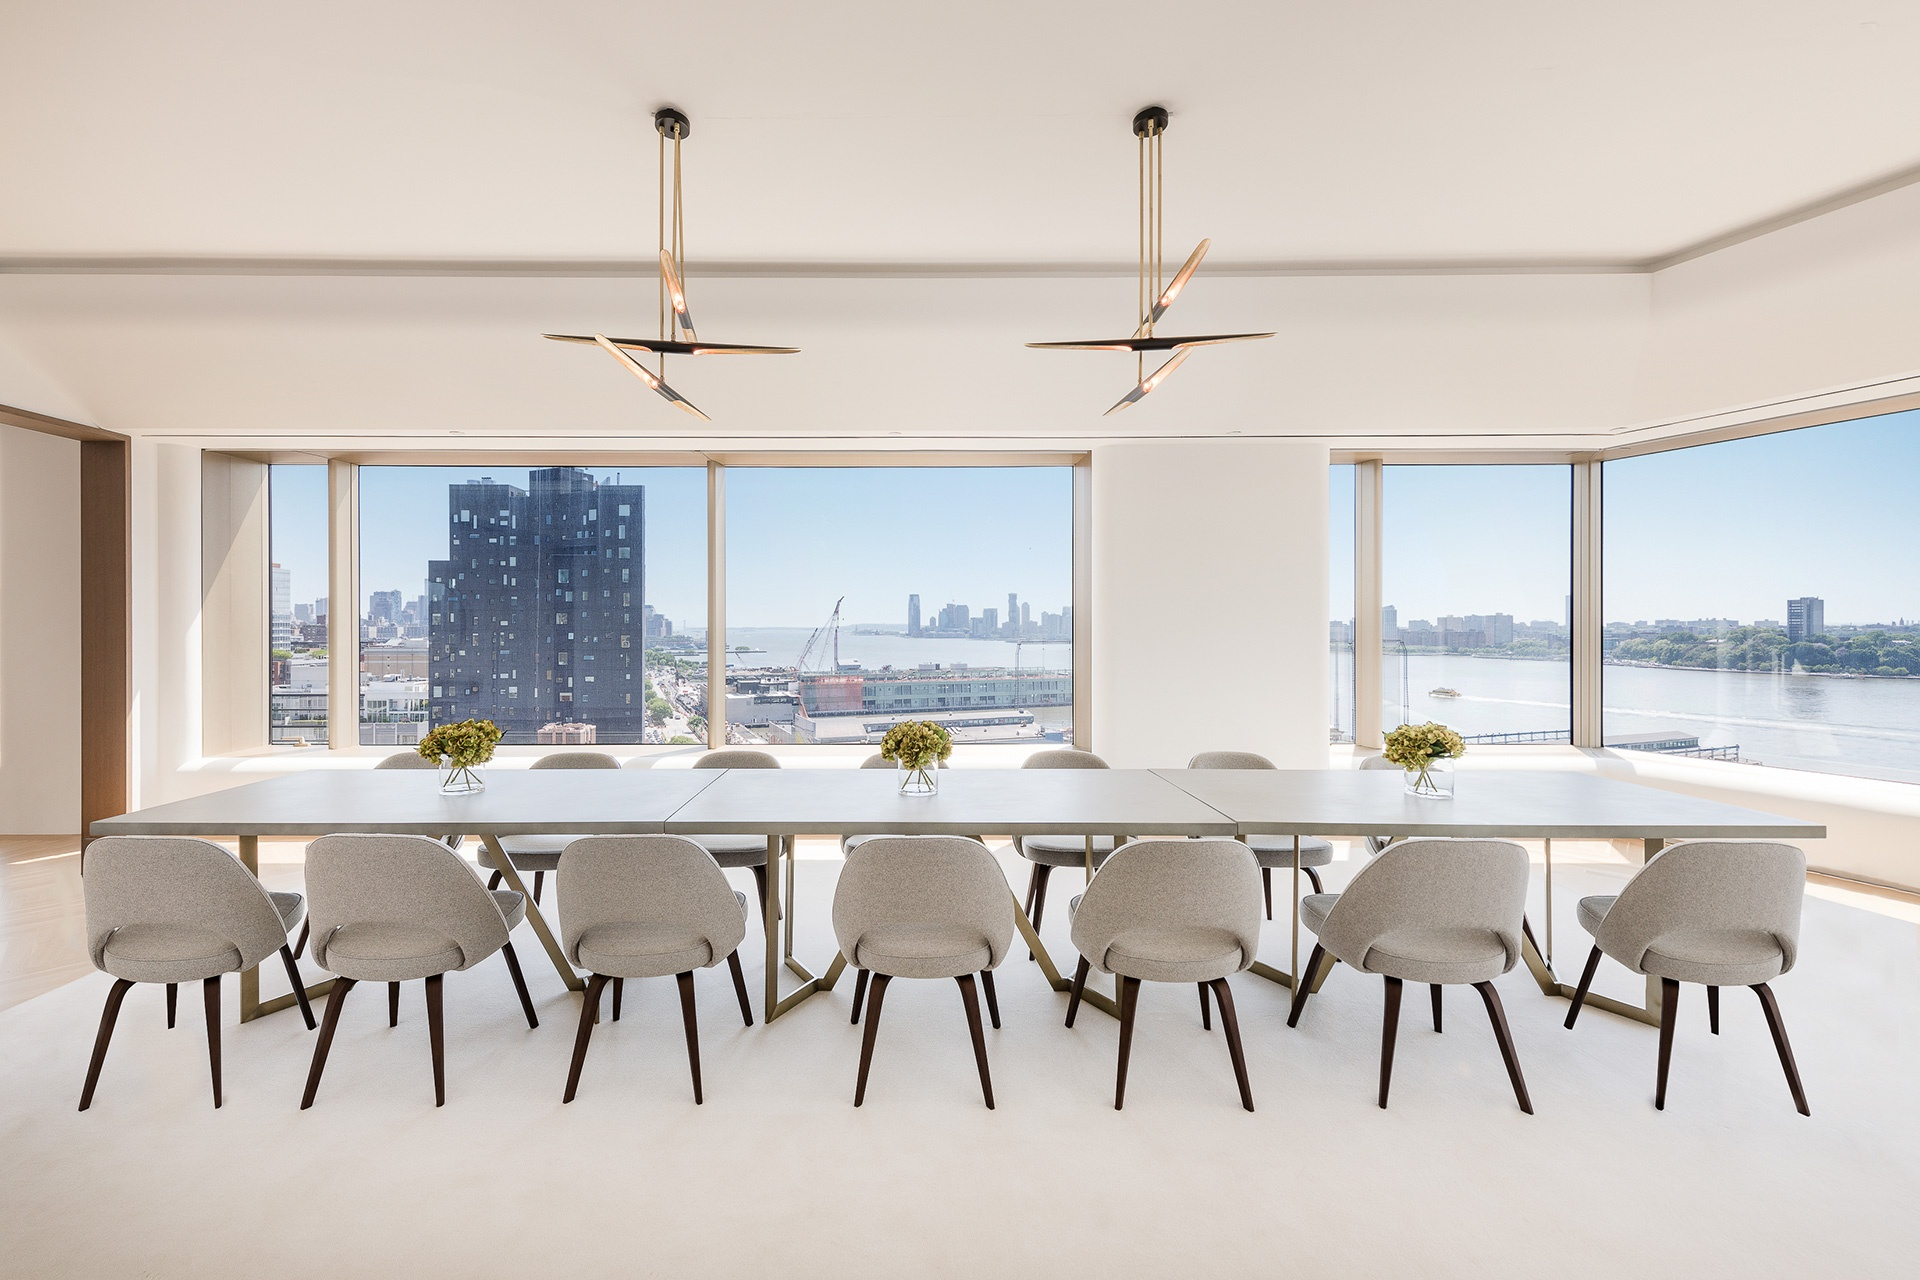 This ultra-luxurious residence overlooks the Hudson River and downtown Manhattan from the 15th floor of the Foster + Partners-designed 551 West 21st Street in West Chelsea—the contemporary art capital of the world.